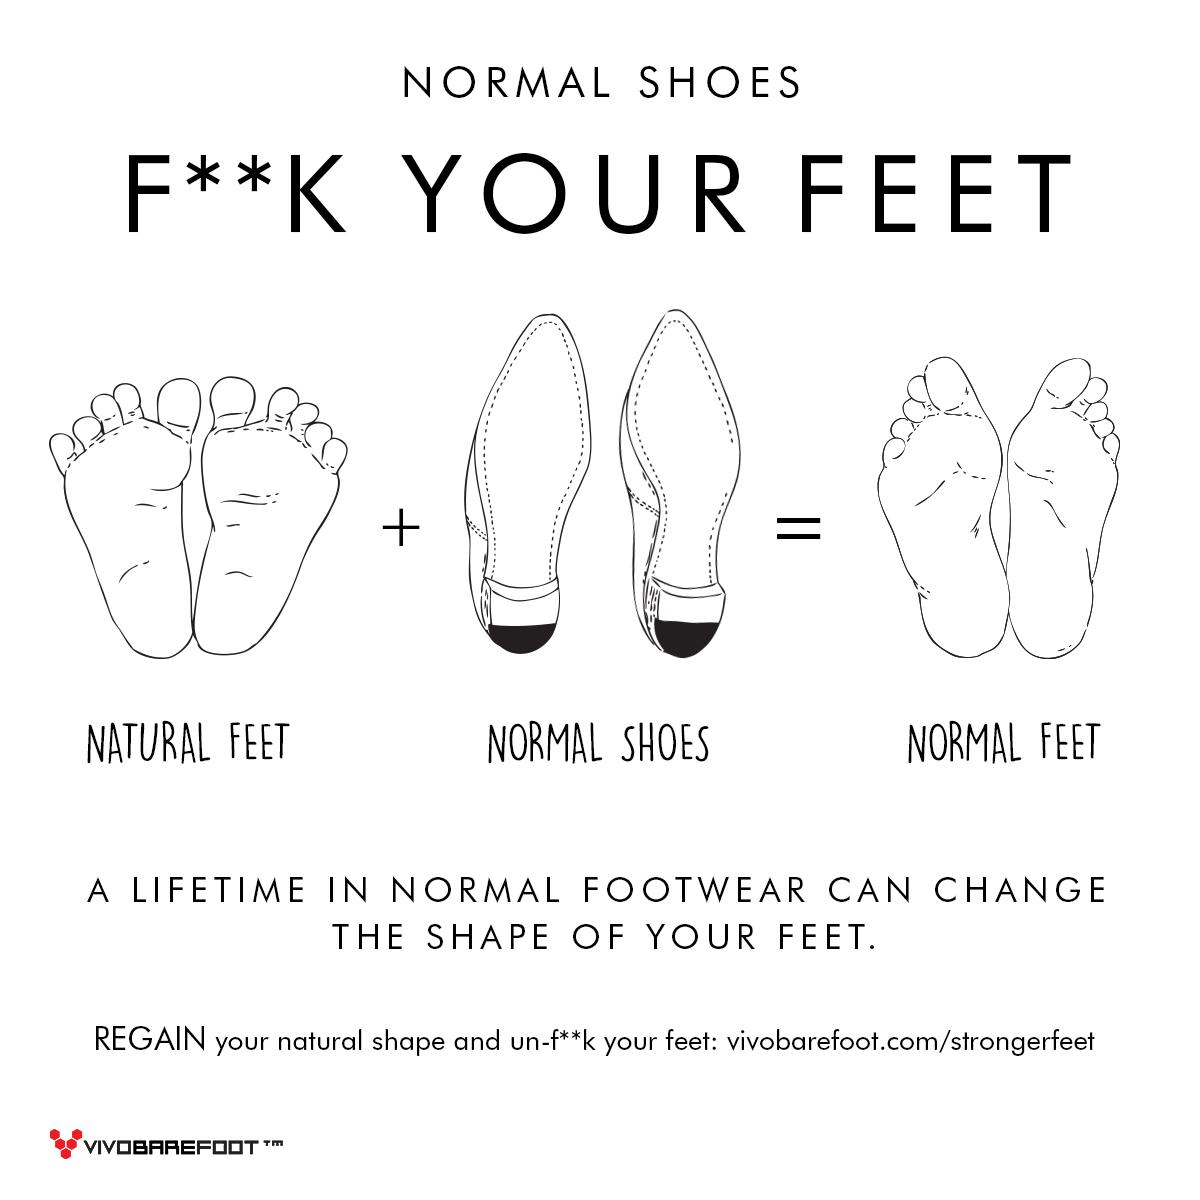 Normal shoes can fuck your feet http://t.co/5l9j0eATMu  #ForFootSake http://t.co/5MFPZGOOSR